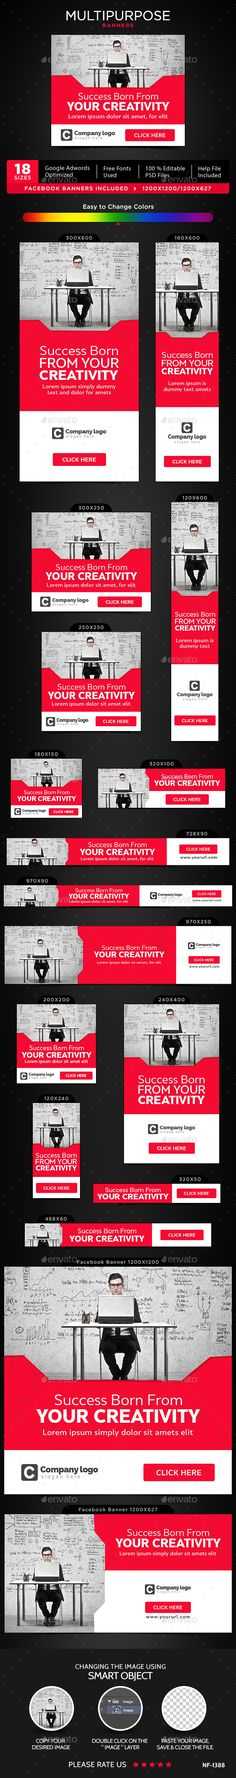 Multipurpose Banners Template PSD. Download here: http://graphicriver.net/item/multipurpose-banners/16888098?ref=ksioks